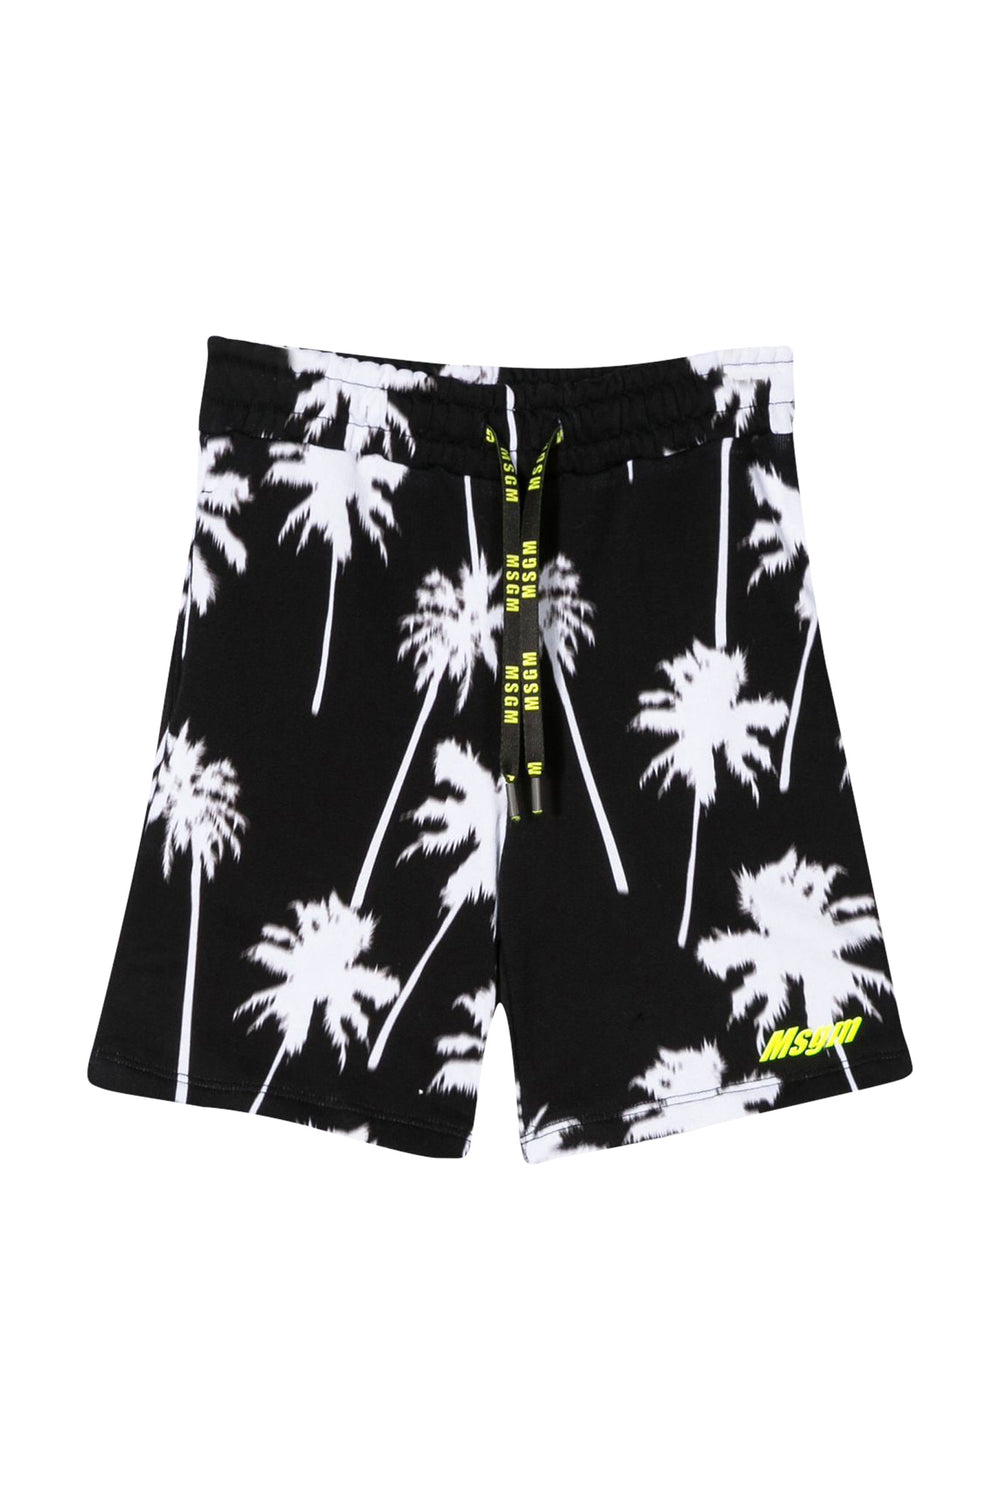 MSGM Black Shorts With Palm Tree Print